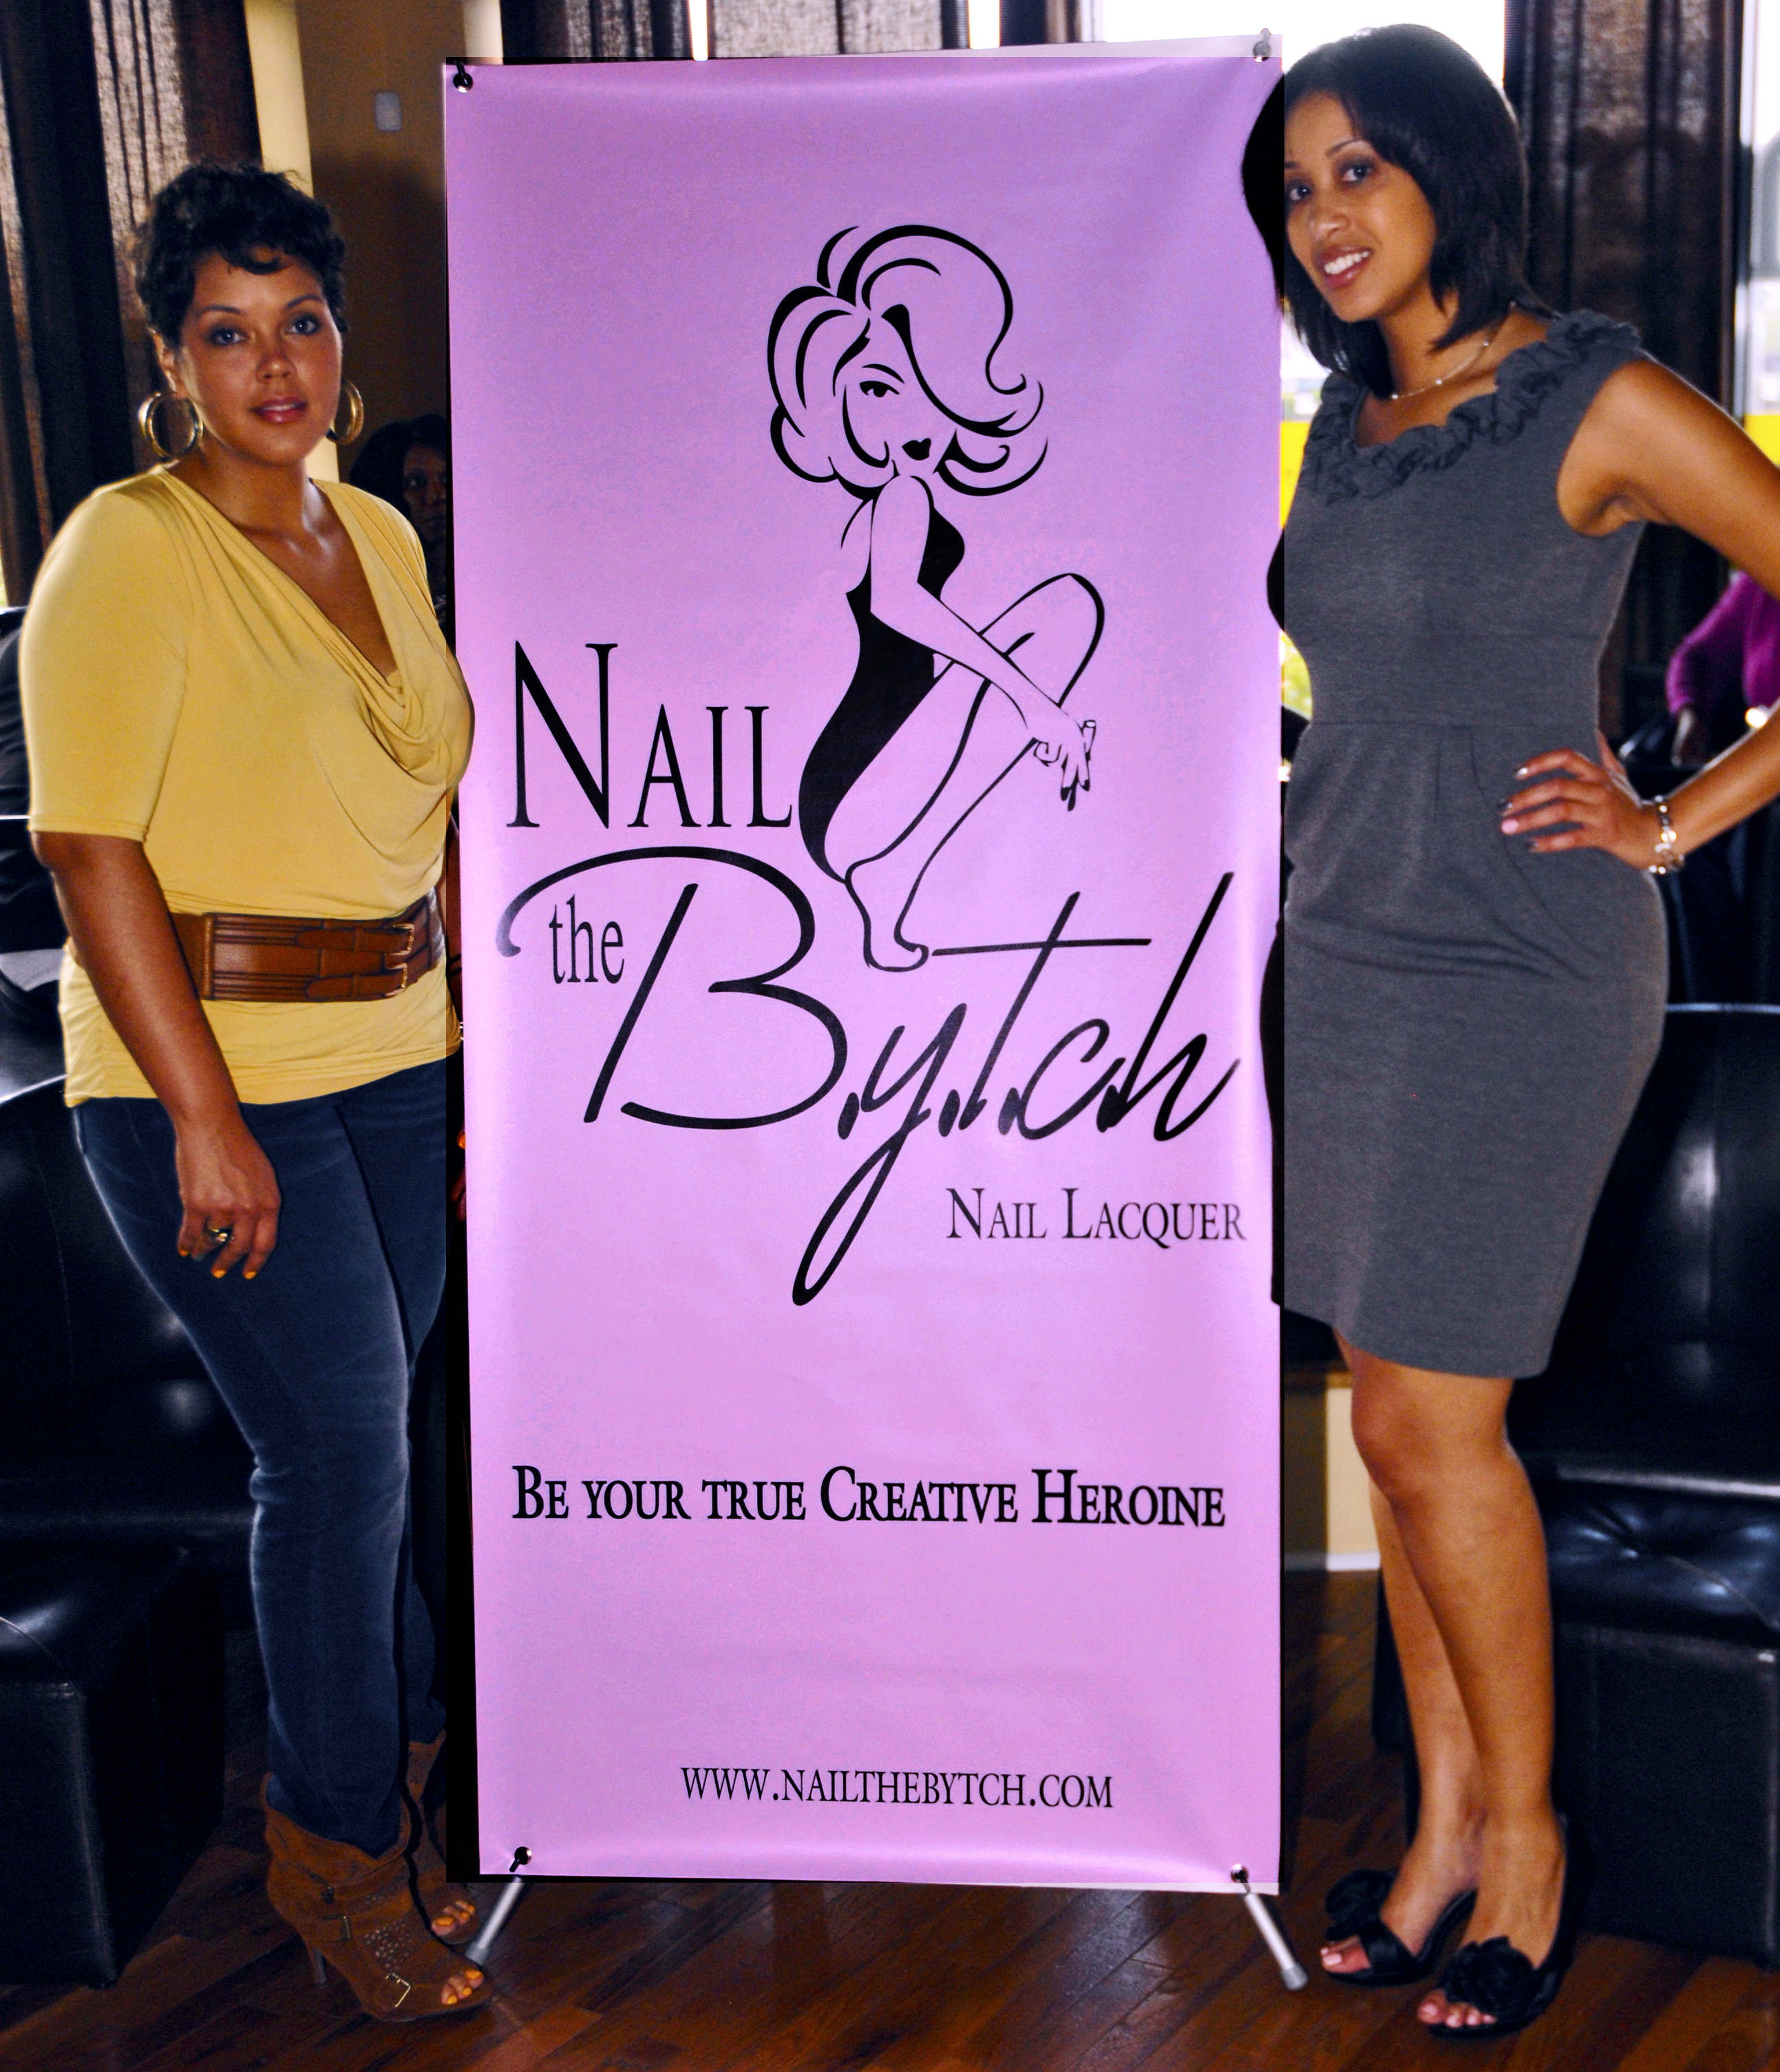 Nail the B.Y.T.C.H. (Be Your True Creative Heroine) polish – You can ...